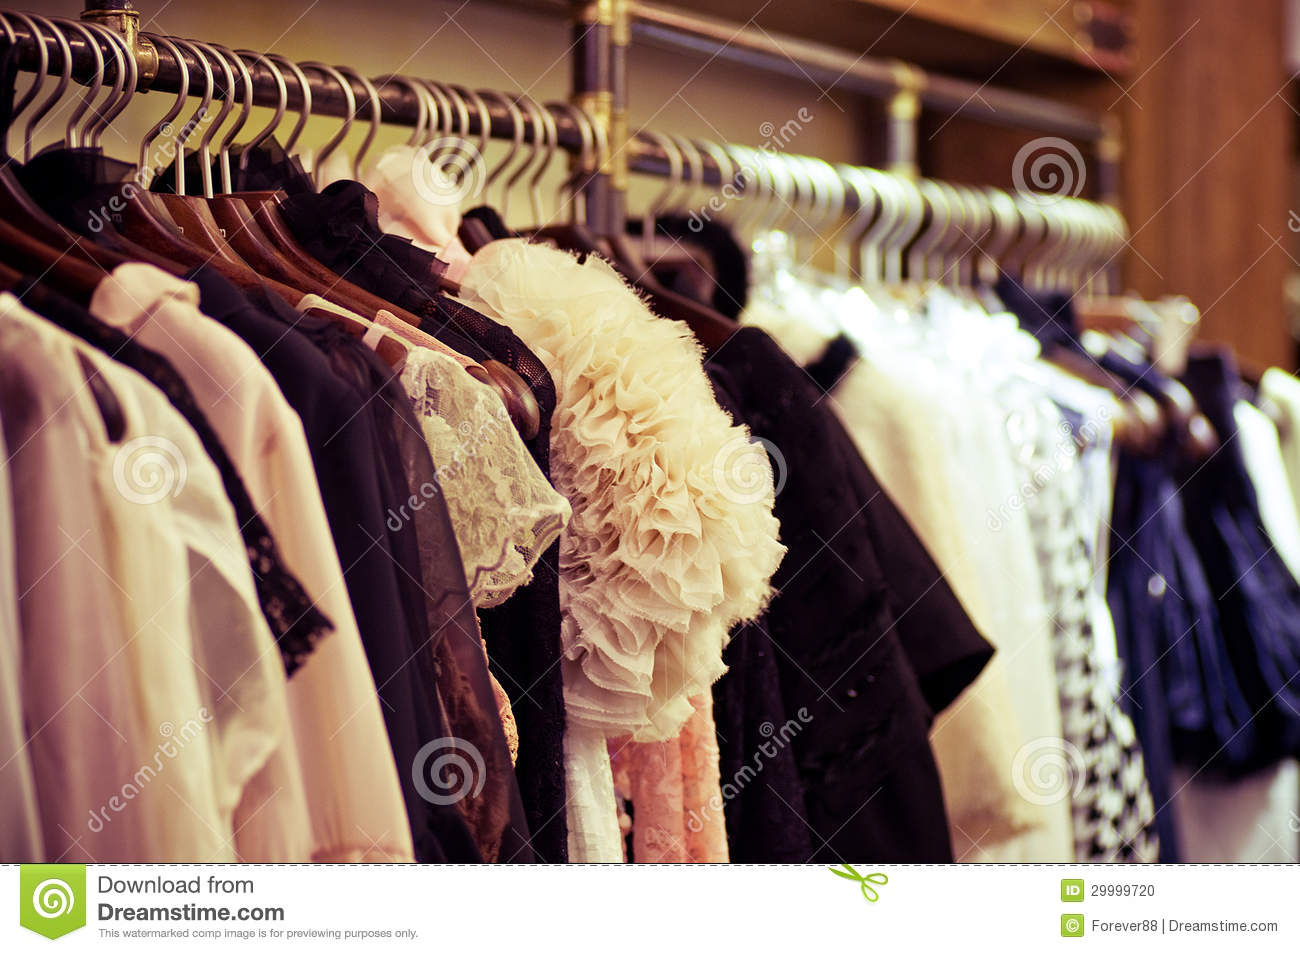 Choice of fashion clothes of different colors